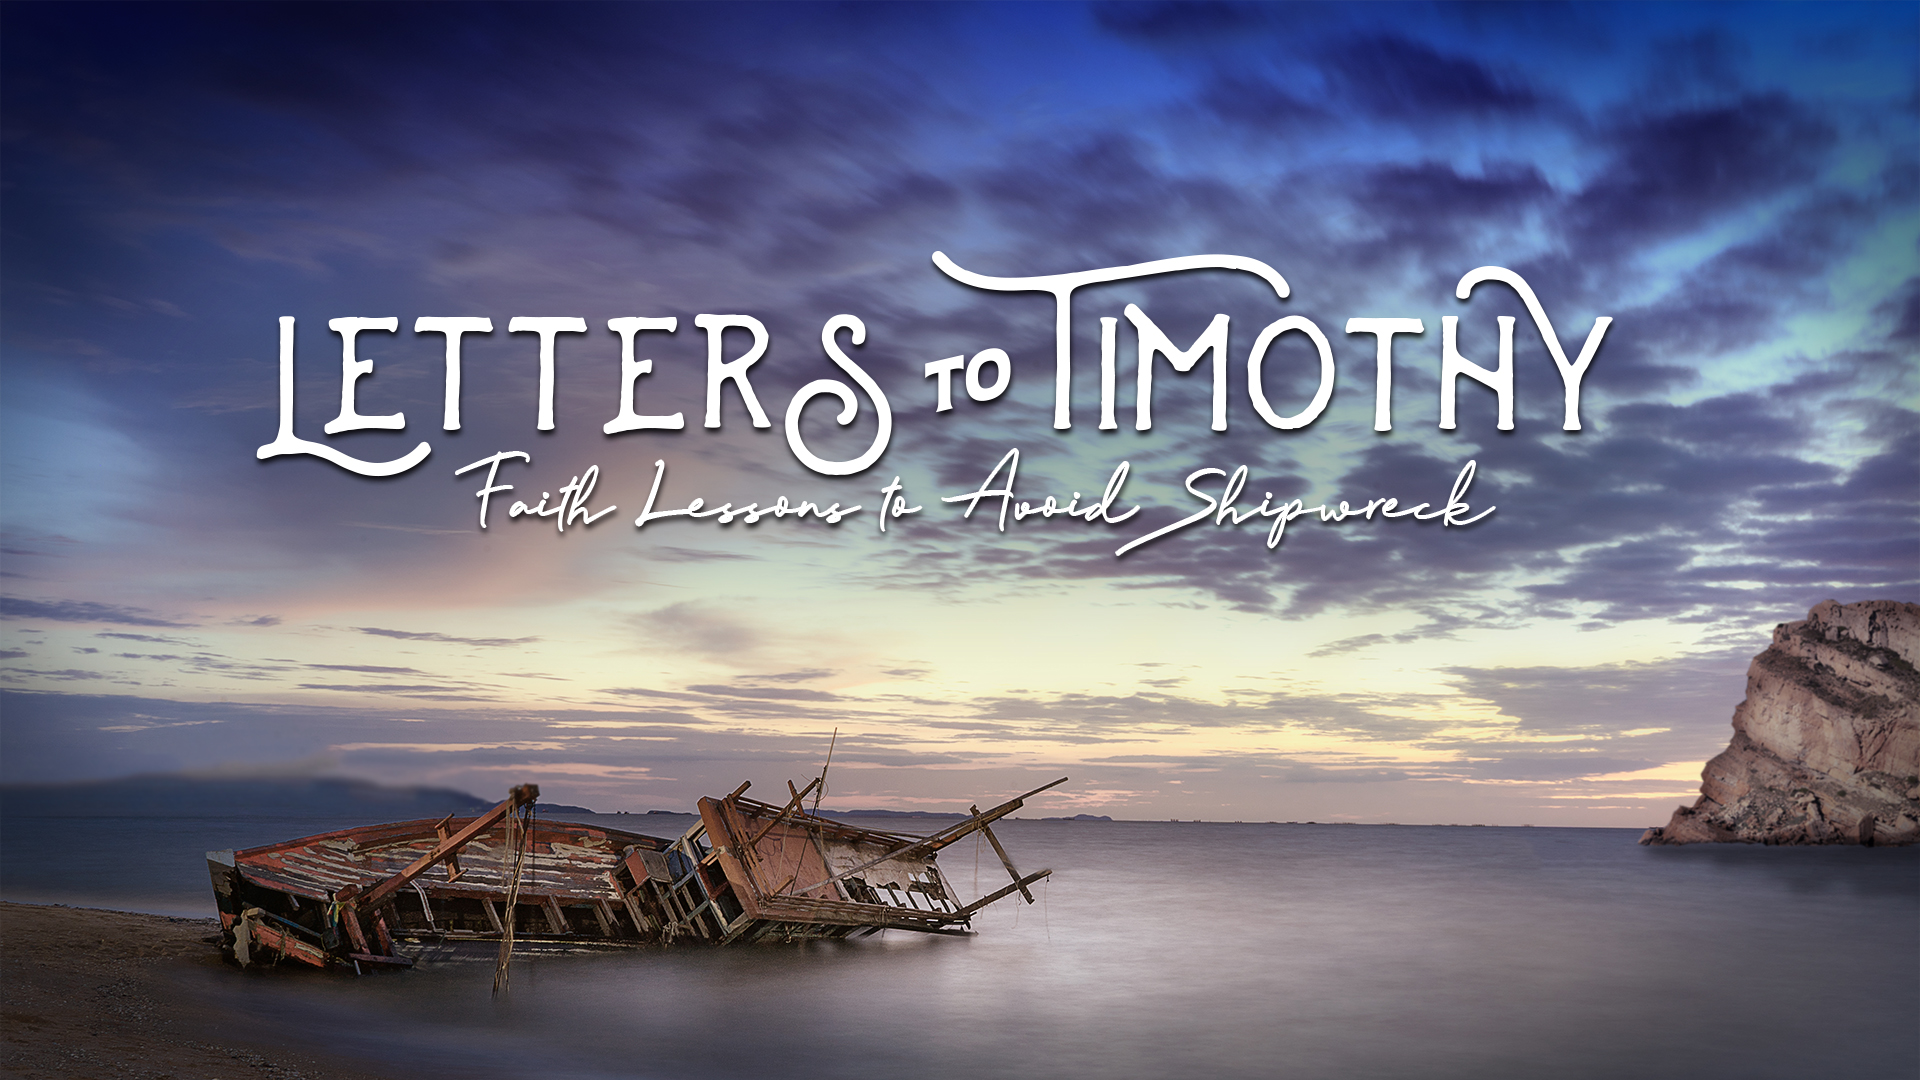 Letters to Timothy: 1 and 2 Timothy - Fall 2019